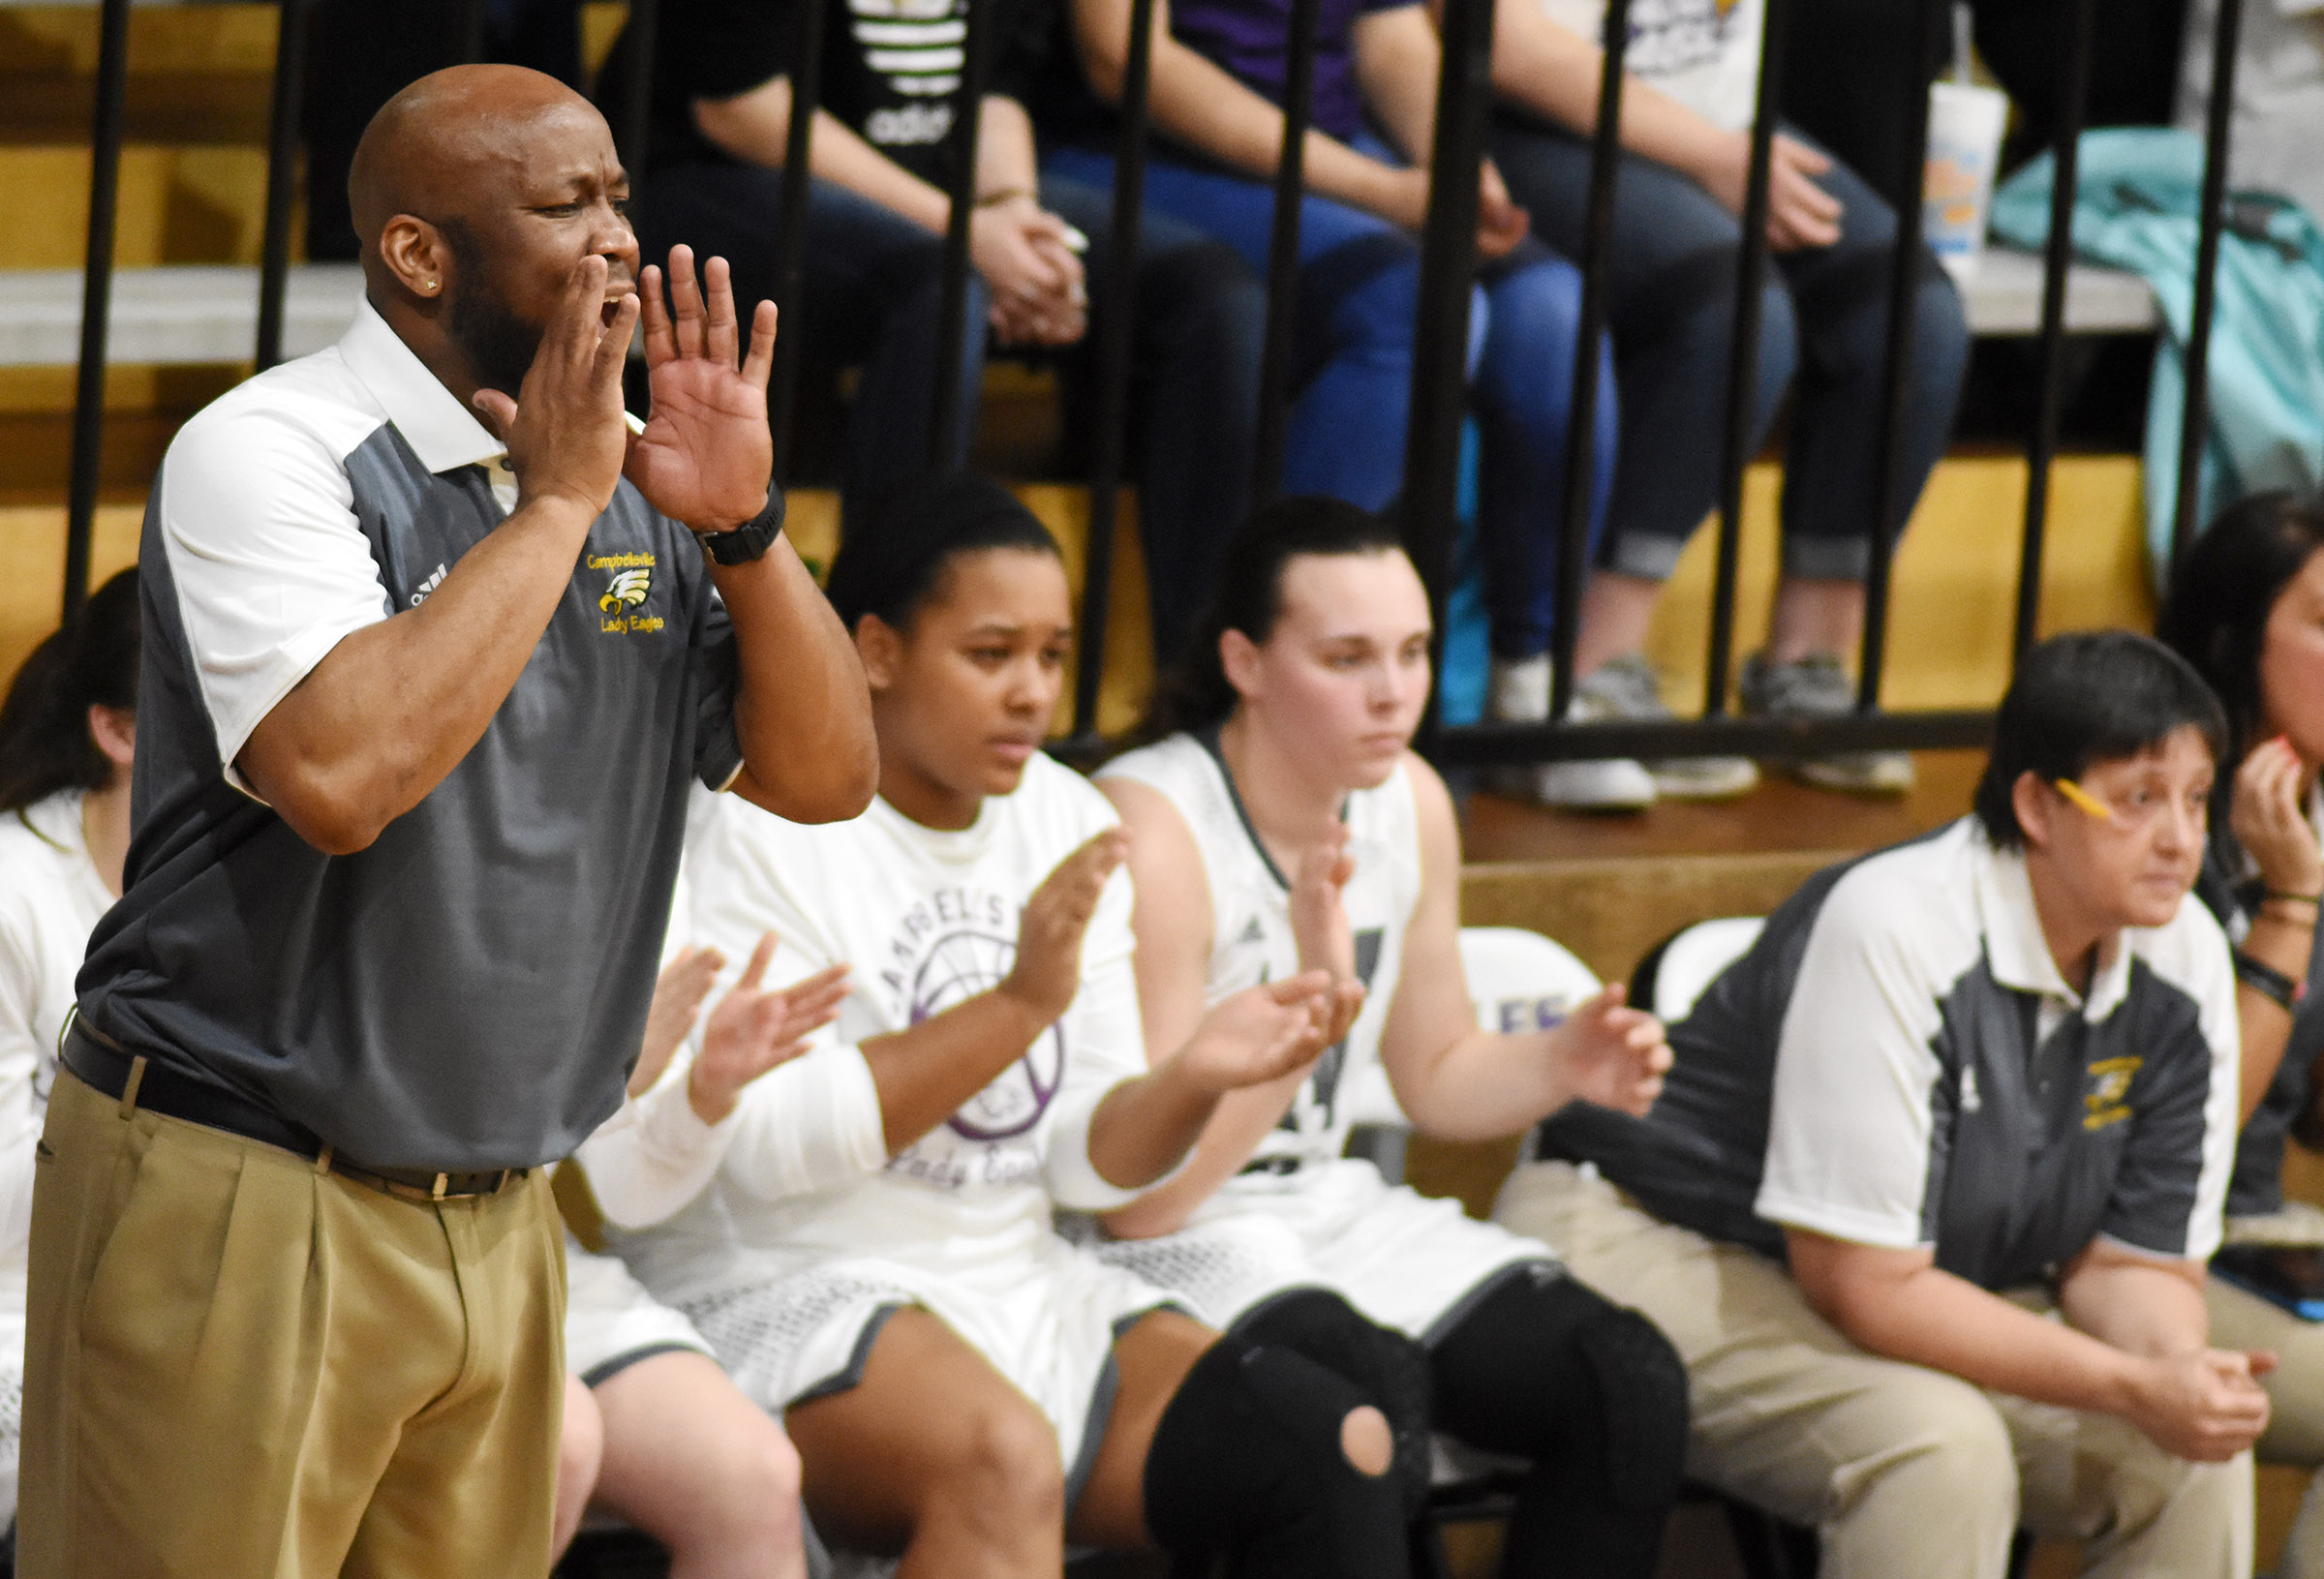 CHS girls' basketball head coach Anthony Epps yells to his players.